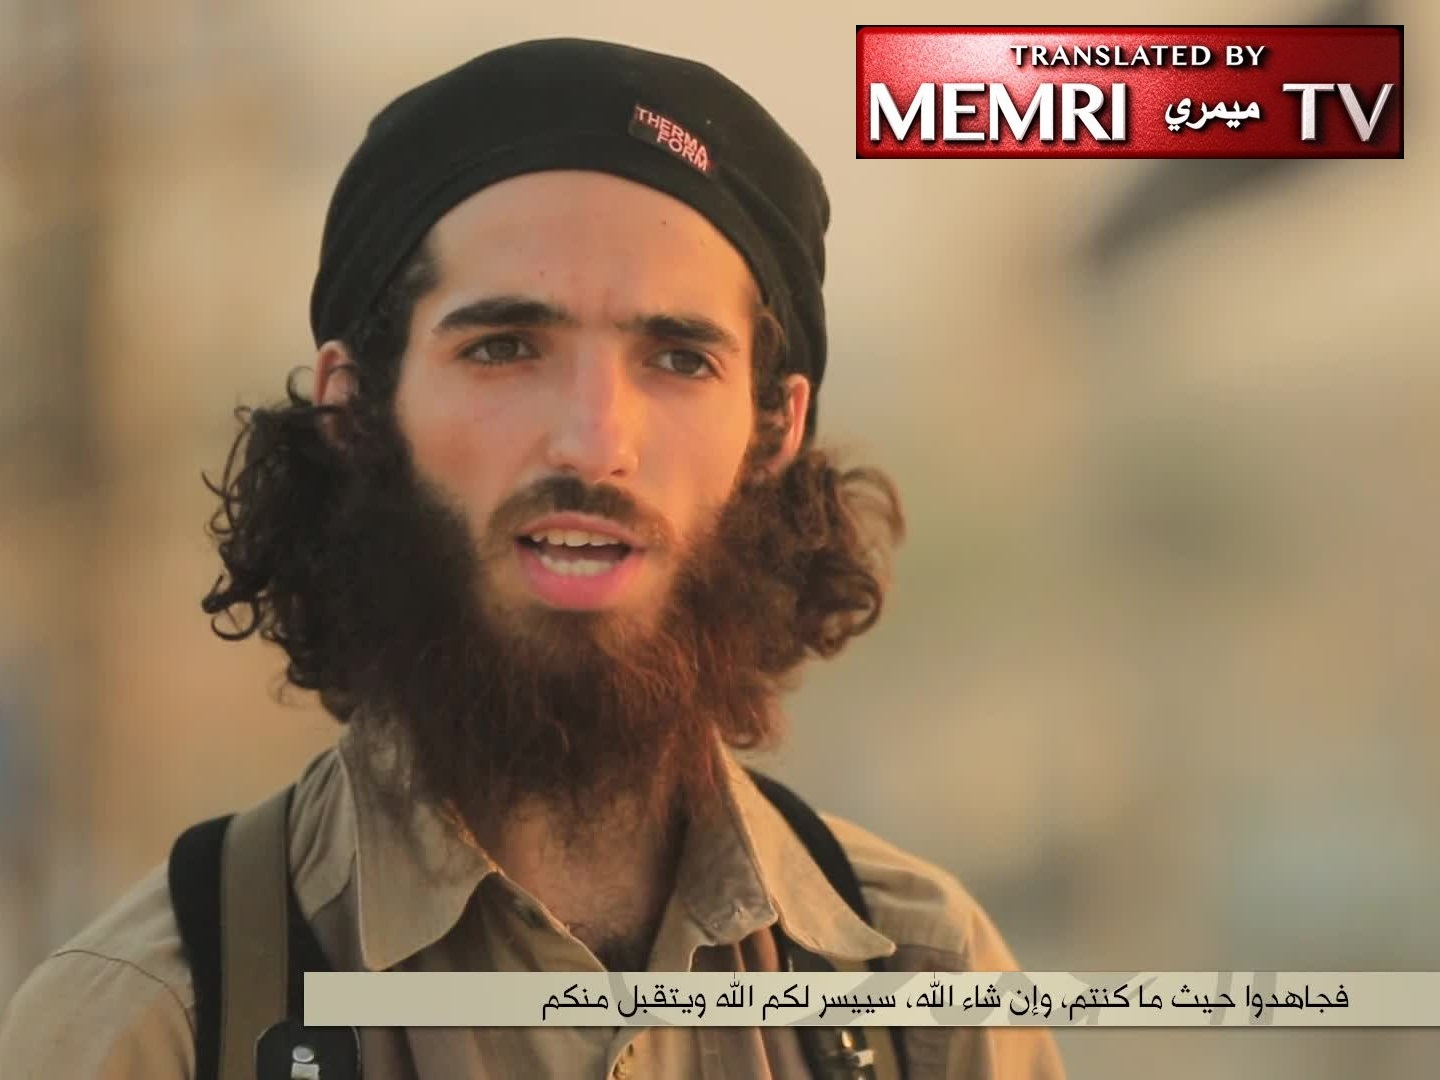 ISIS Video: Spanish-Speaking Fighters Praise Attacks in Spain, Urge Muslims to Carry Out Local Attacks